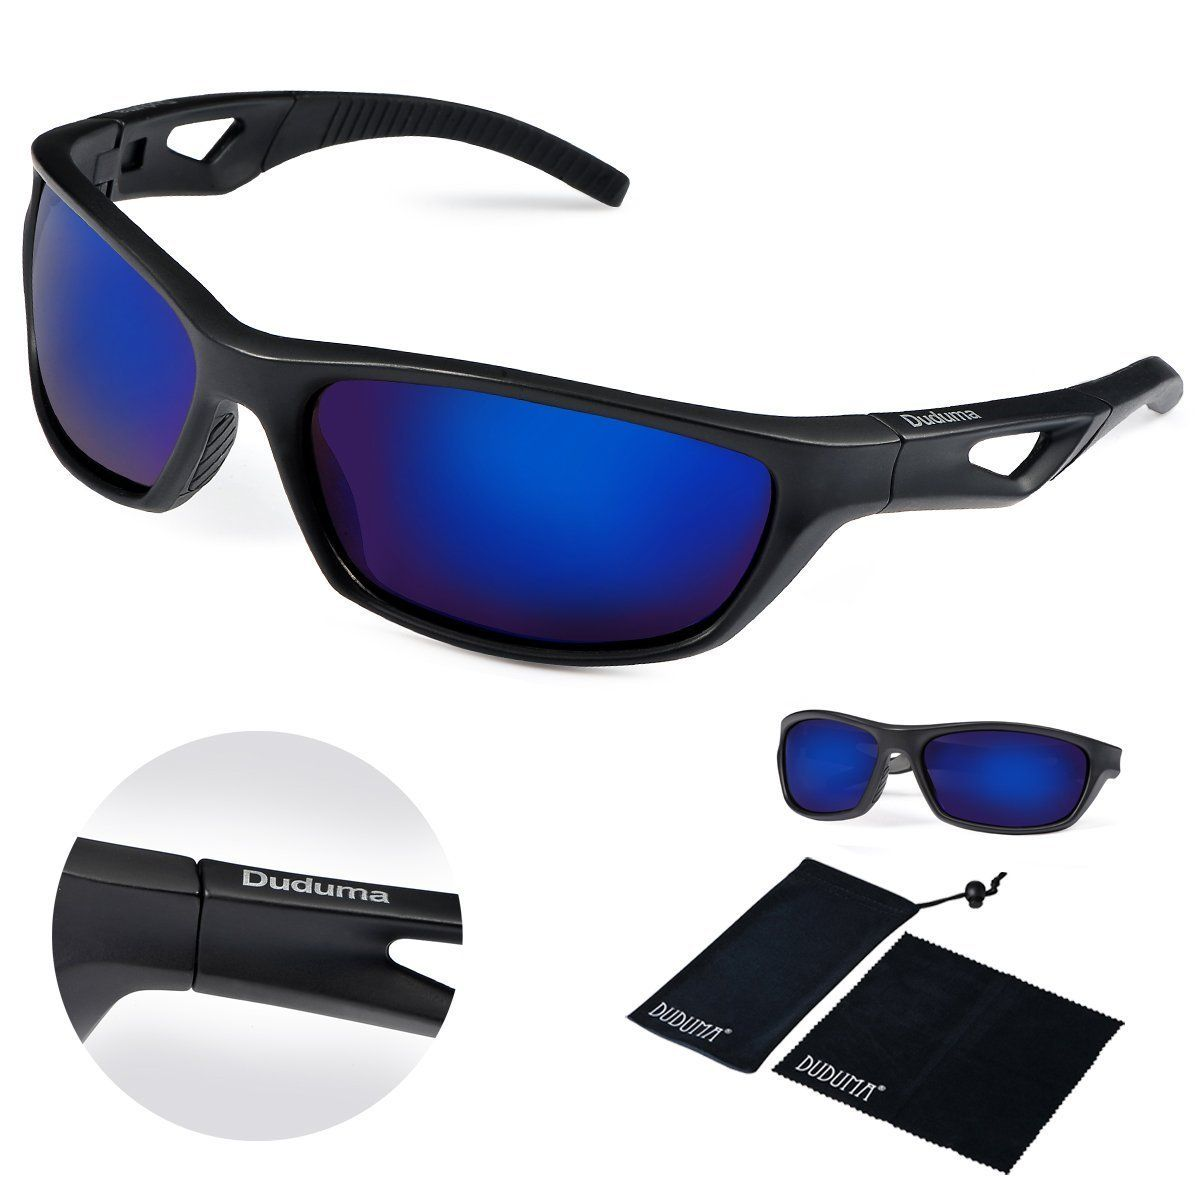 0fb0357490 Amazon.com  Duduma Polarized Sport Mens Sunglasses for Baseball Fishing  Golf Running Cycling with Fashion Design Full-Rimmed Women Sunglasses and  Men ...